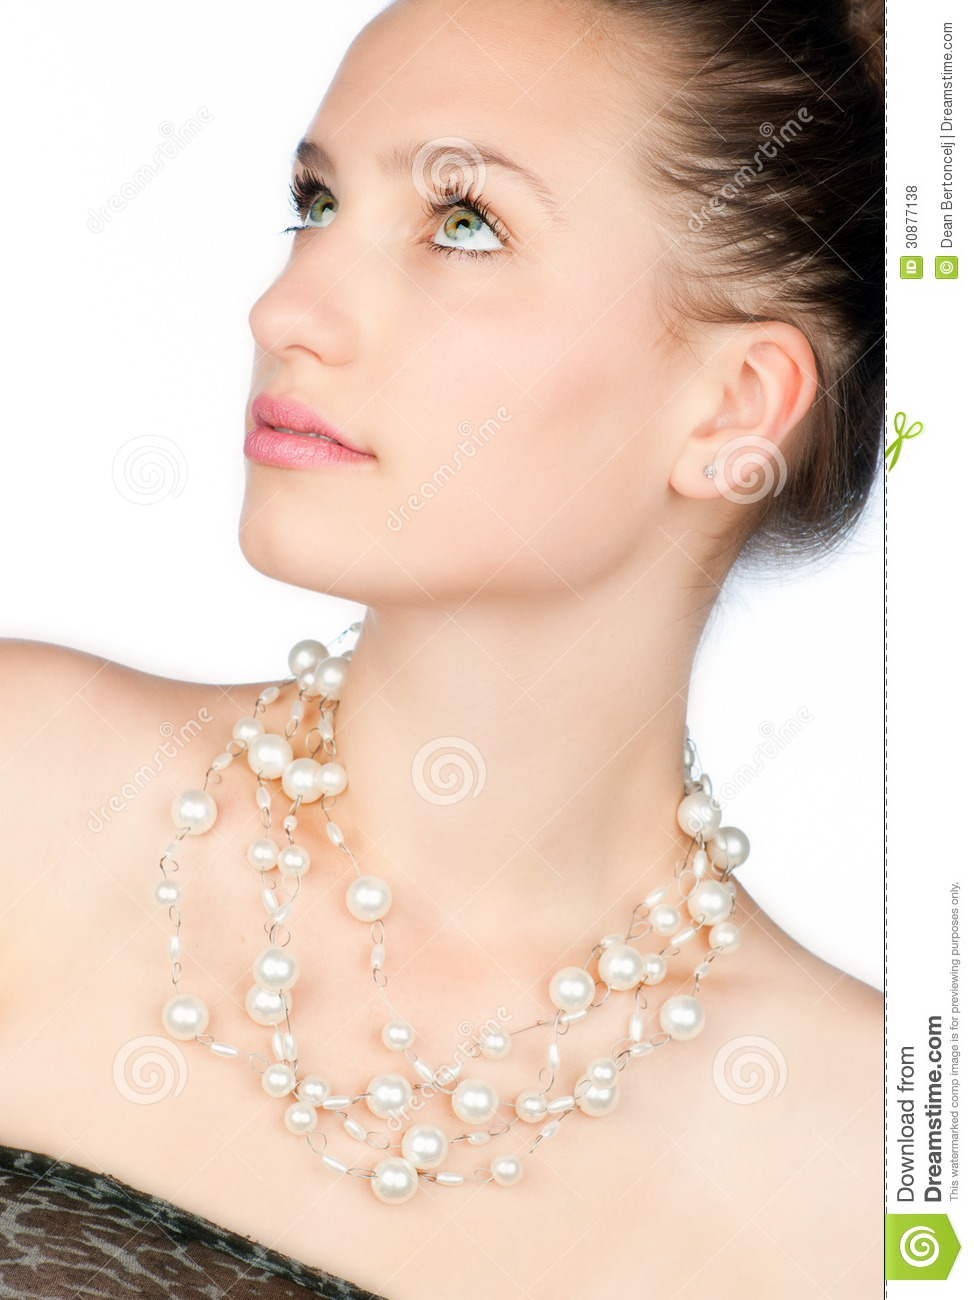 Lot eat teen pearl necklace